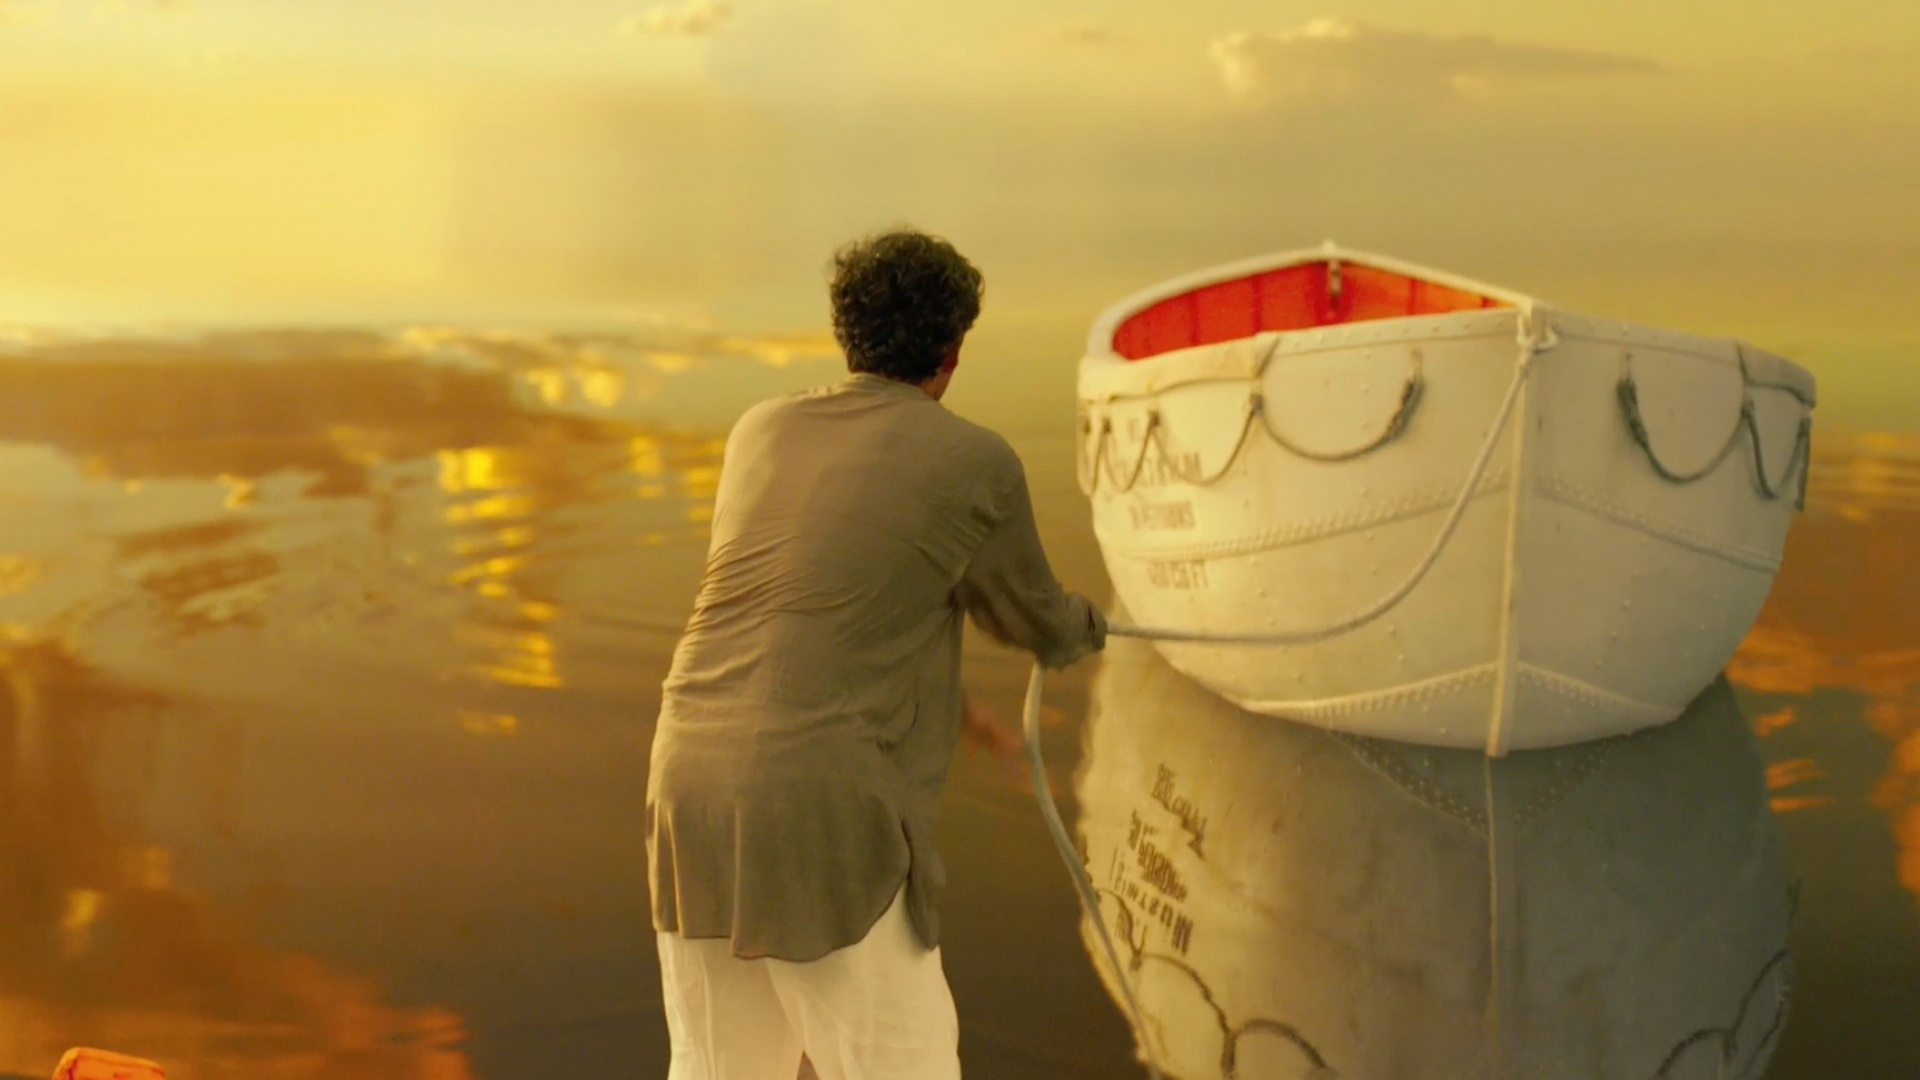 Life of pi movie still 1920 x 1080 download close